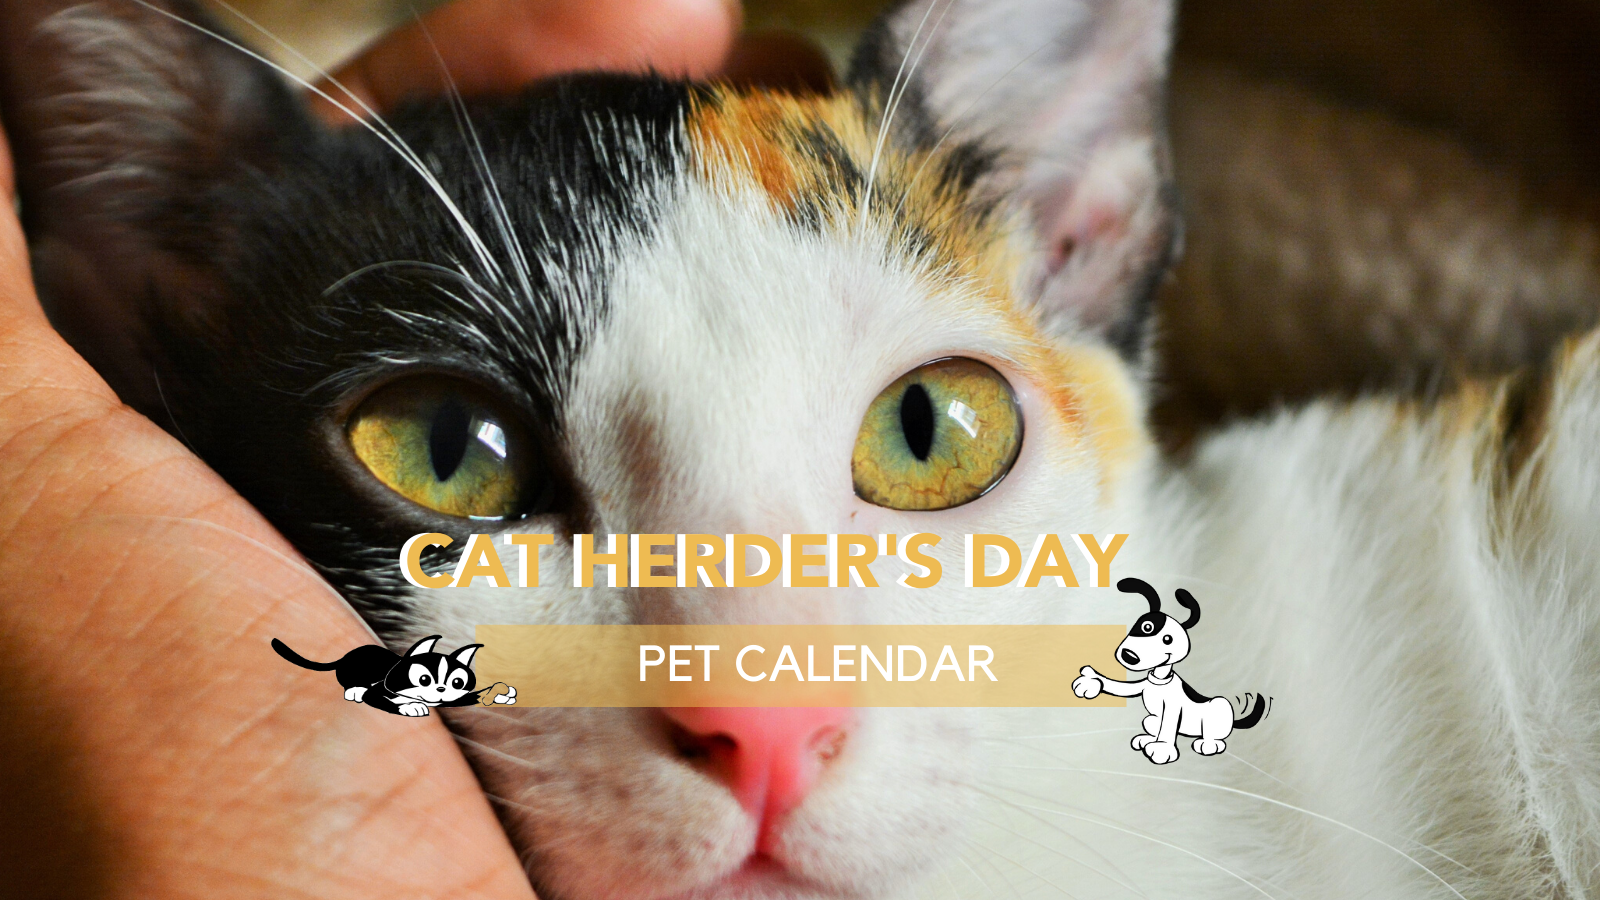 cat herder day